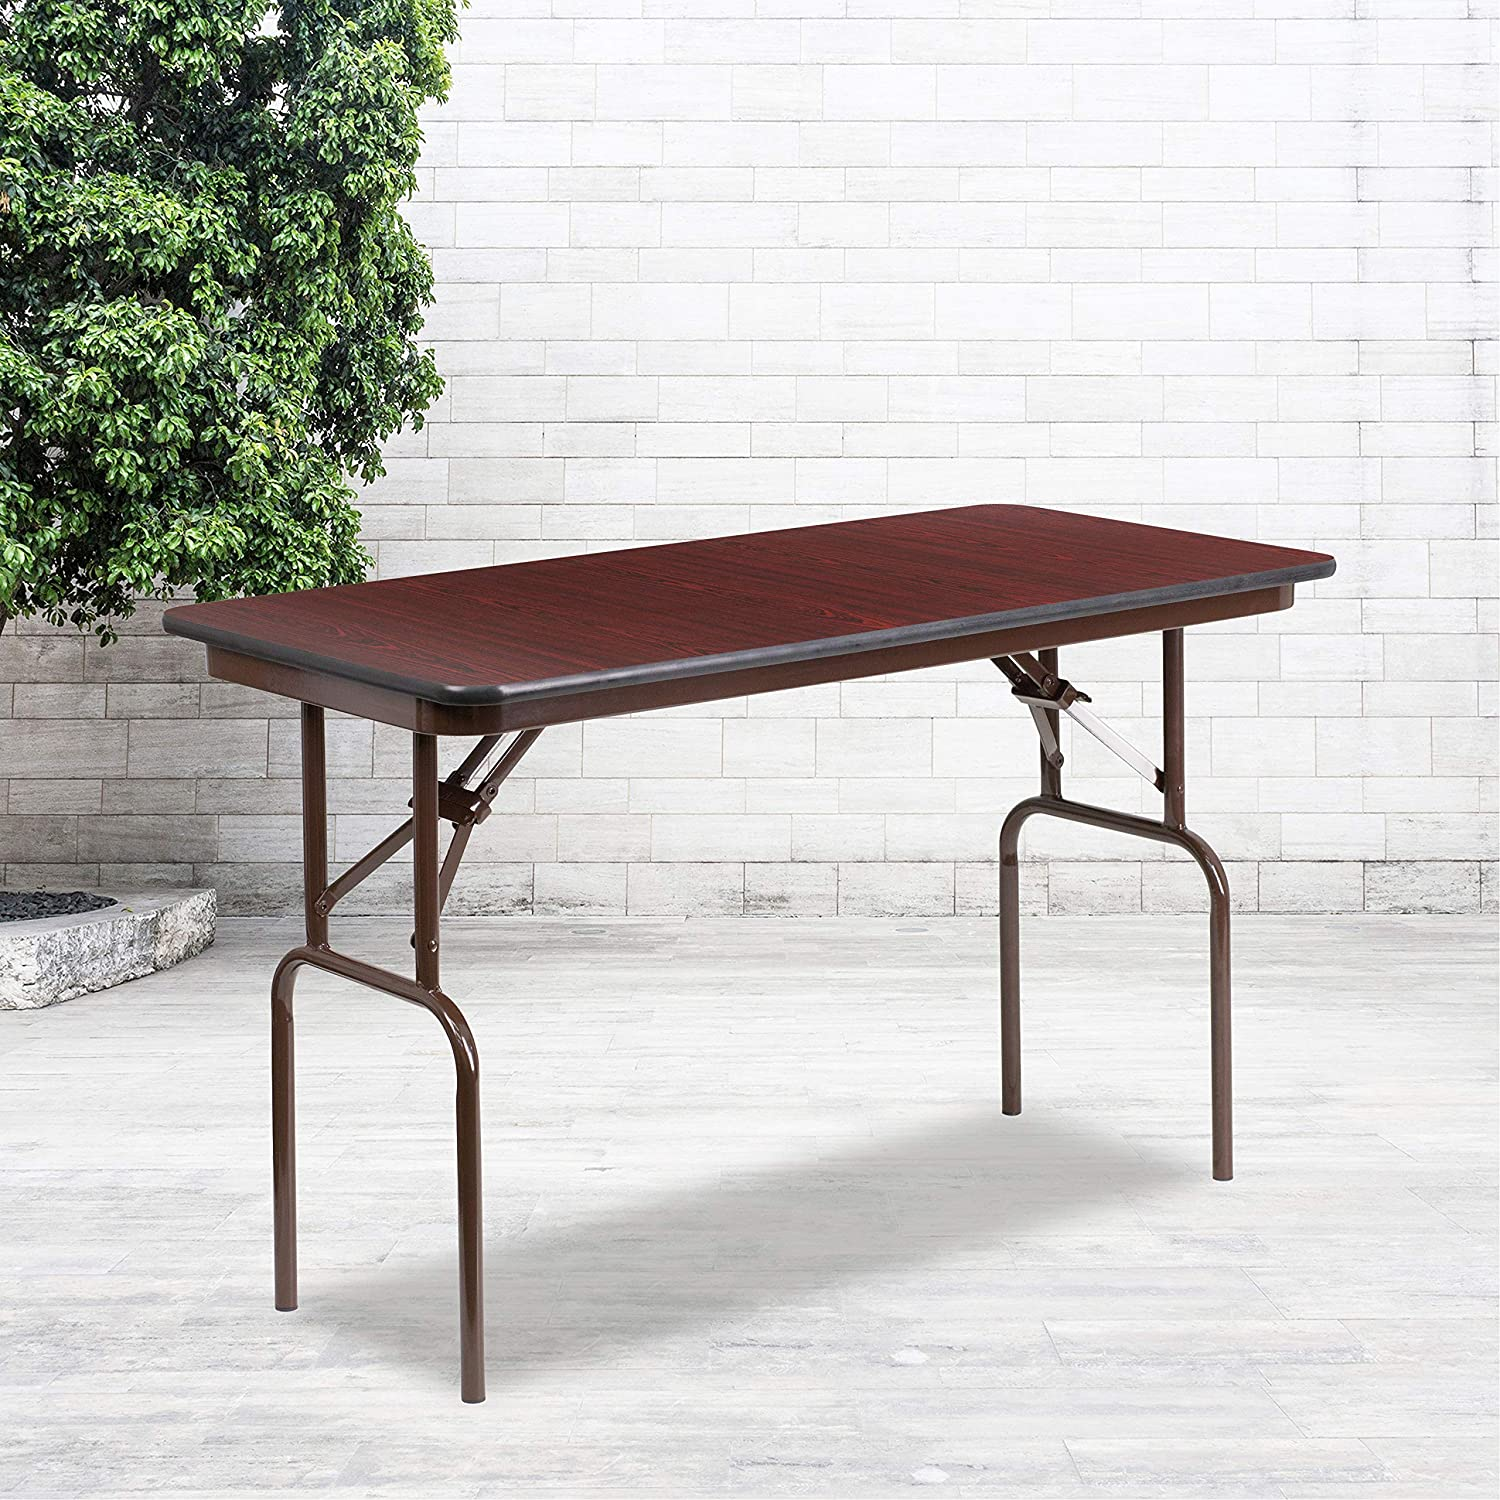 Flash Furniture Cheap mail order specialty store 4-Foot Mahogany Banque Laminate Limited Special Price Folding Melamine